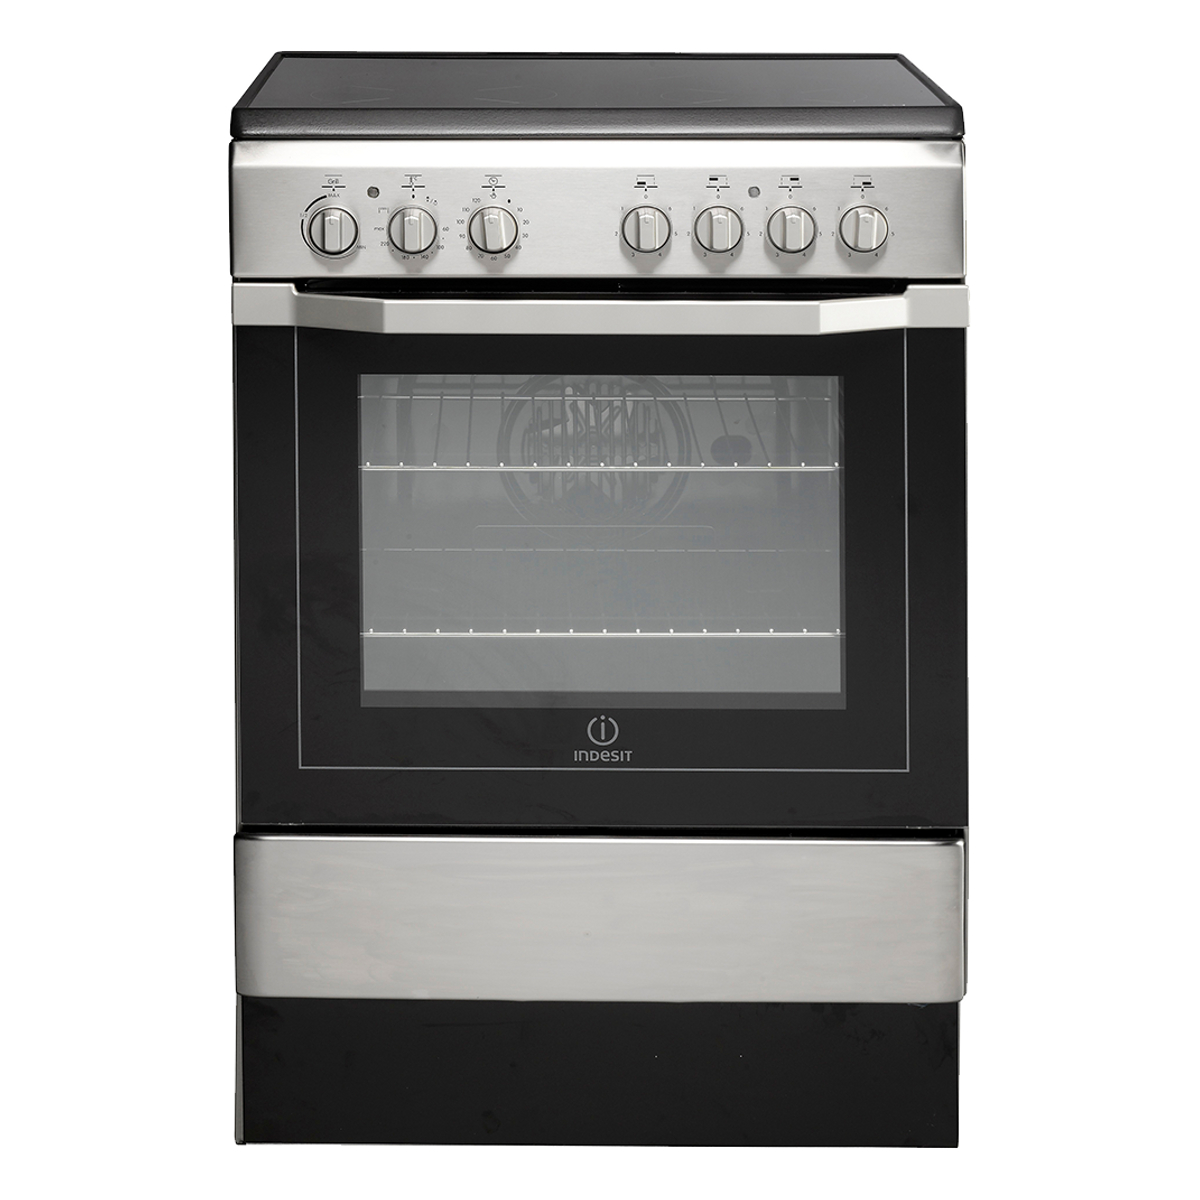 Indesit I6vv2ax Electric Cooker With Ceramic Hob Hughes